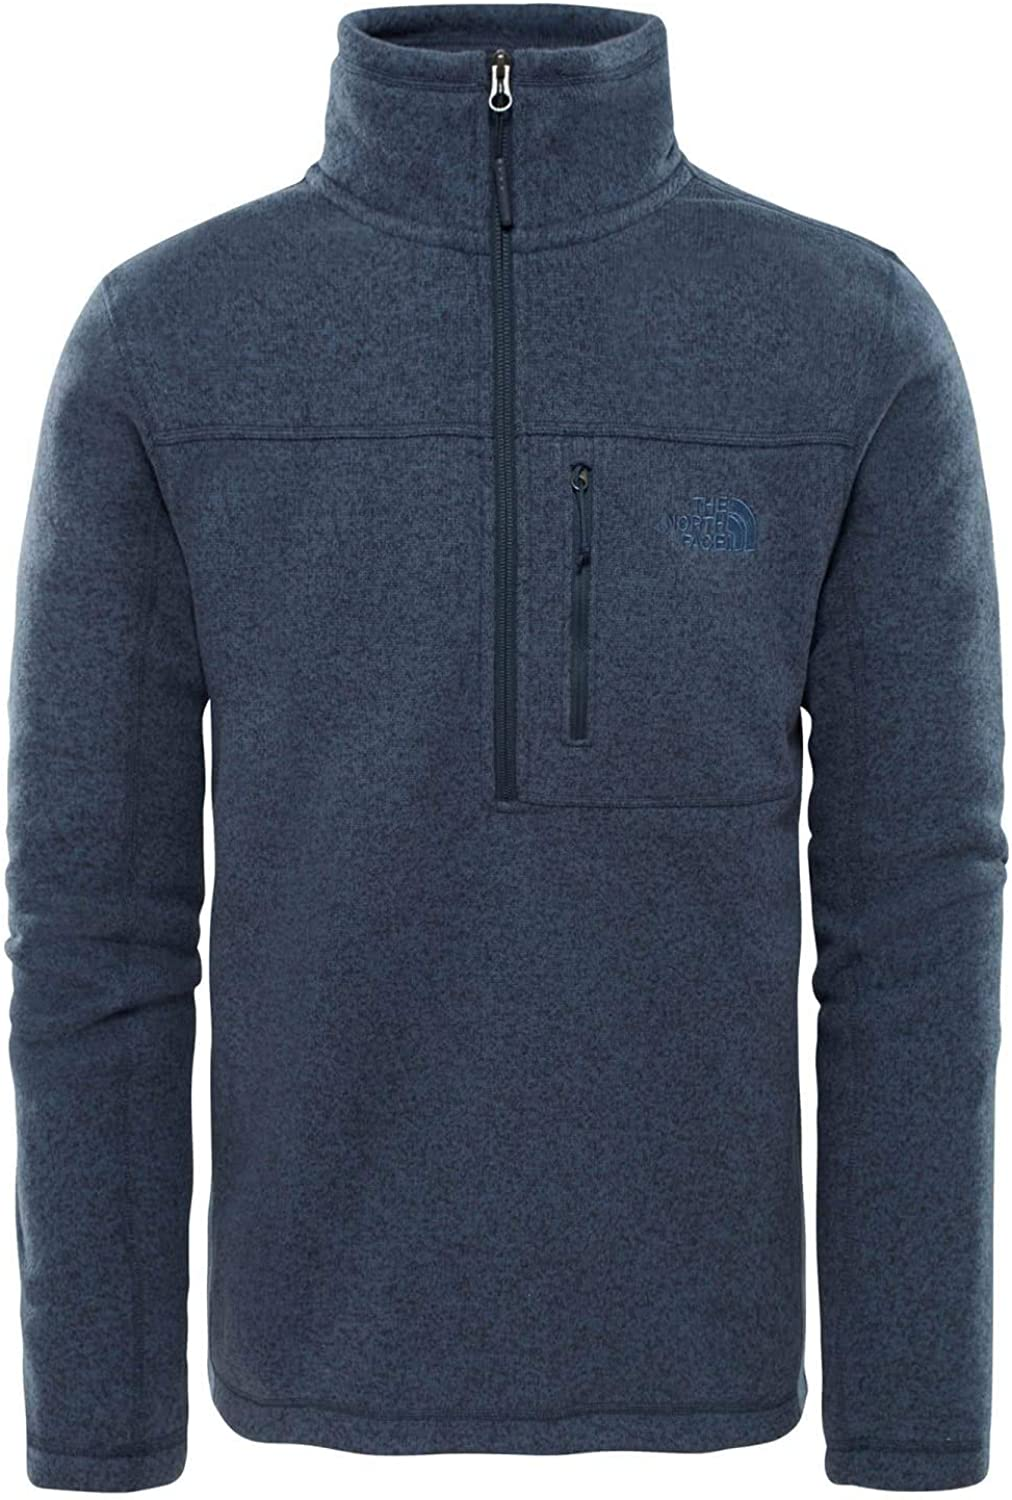 The North Face Gordon Lyons Sudadera para Hombre